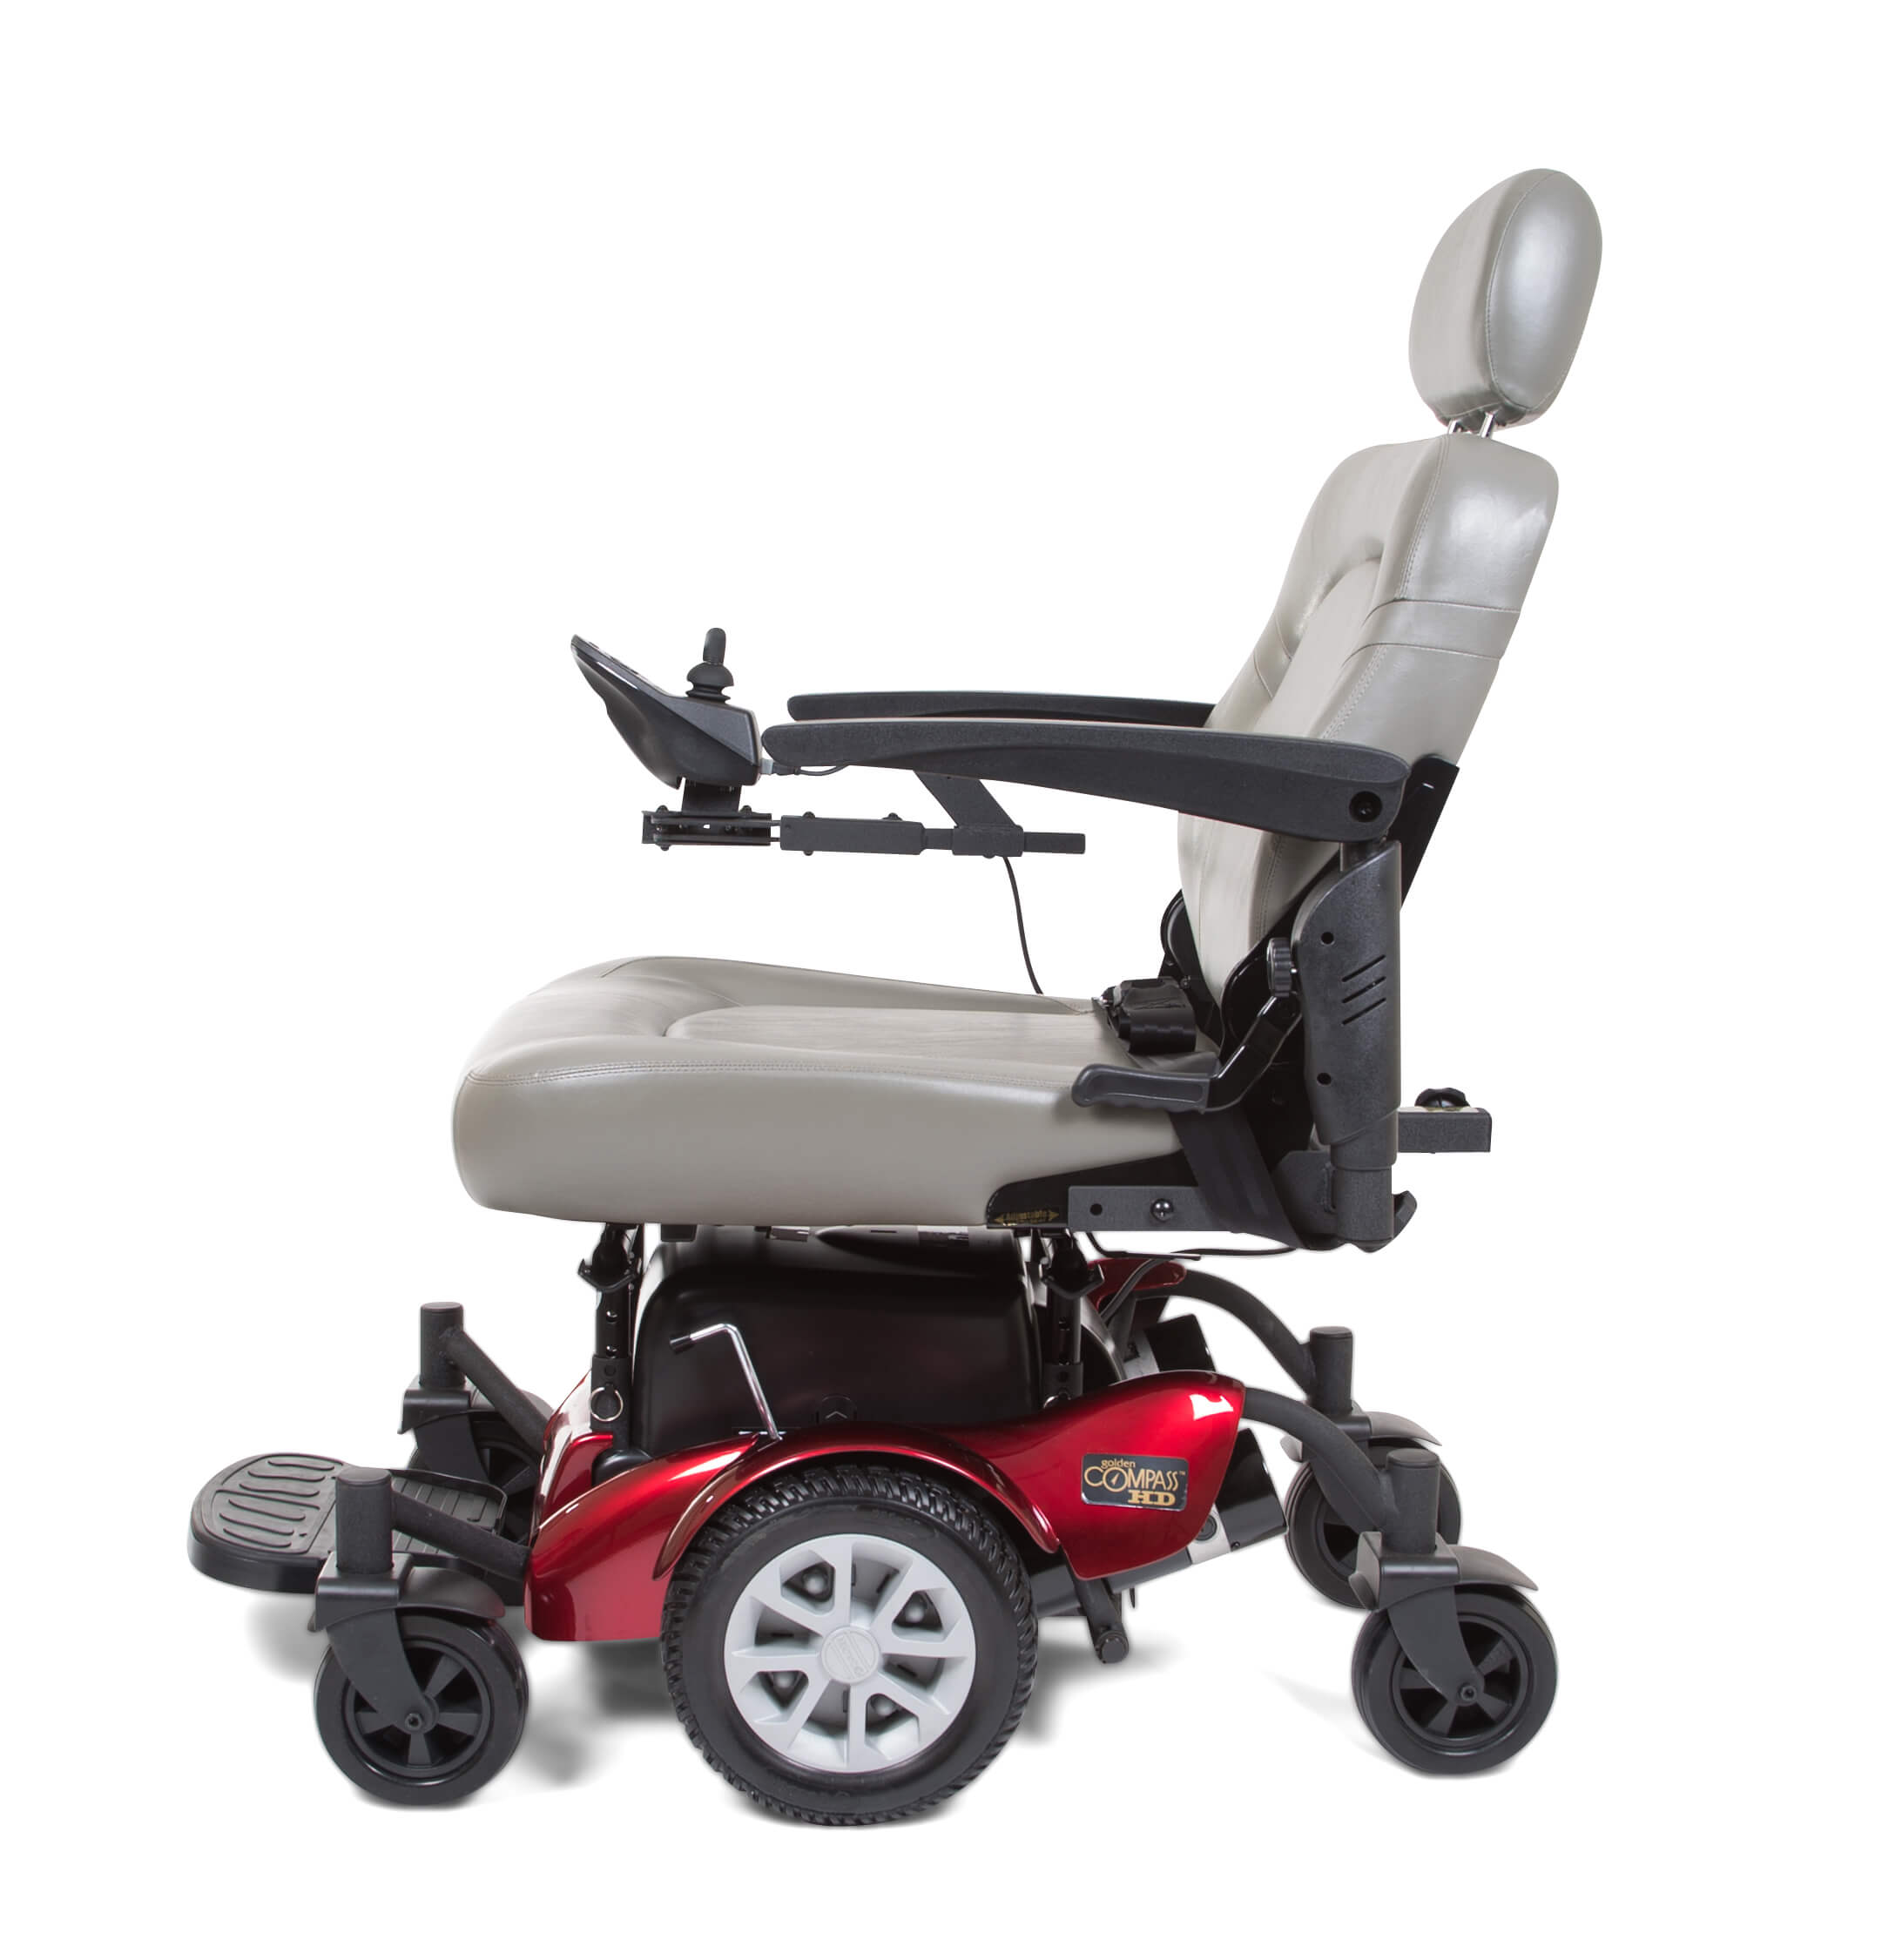 golden power chair gaming with surround sound and vibration technologies gp620 compass hd heavy duty